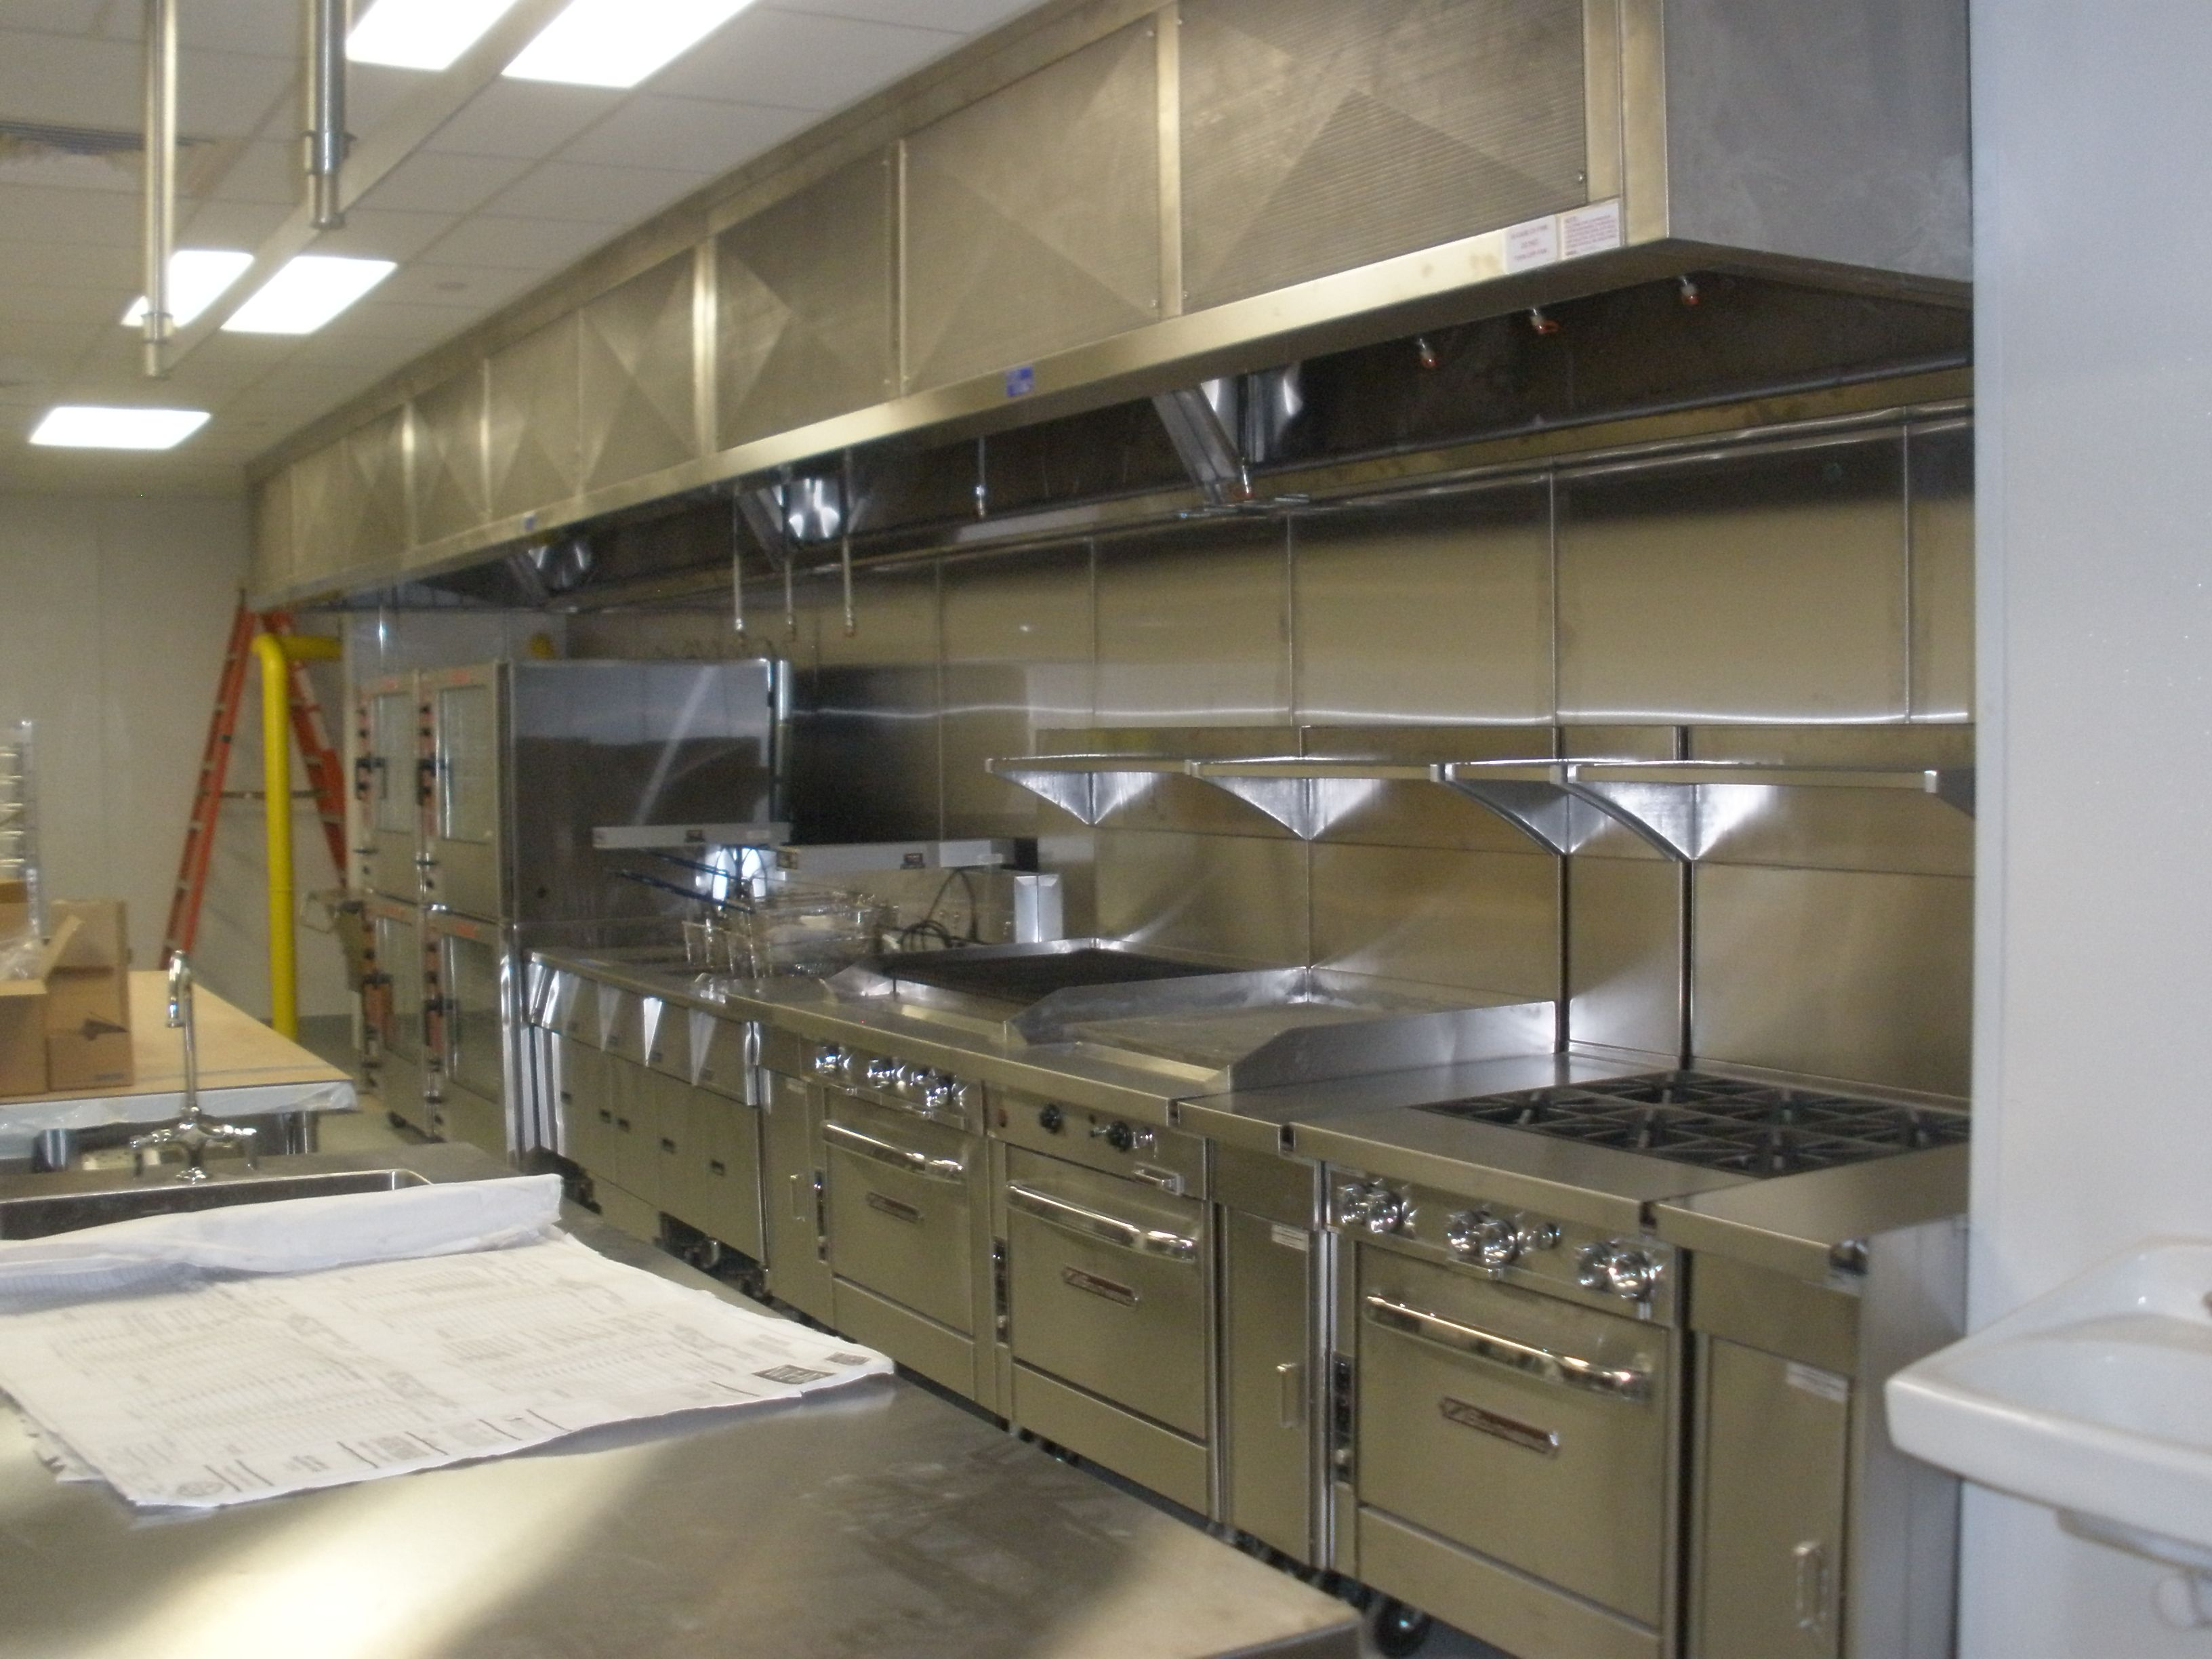 commercial kitchen design Engaging Cafe Kitchen Layout Design Commercial Picture Of In